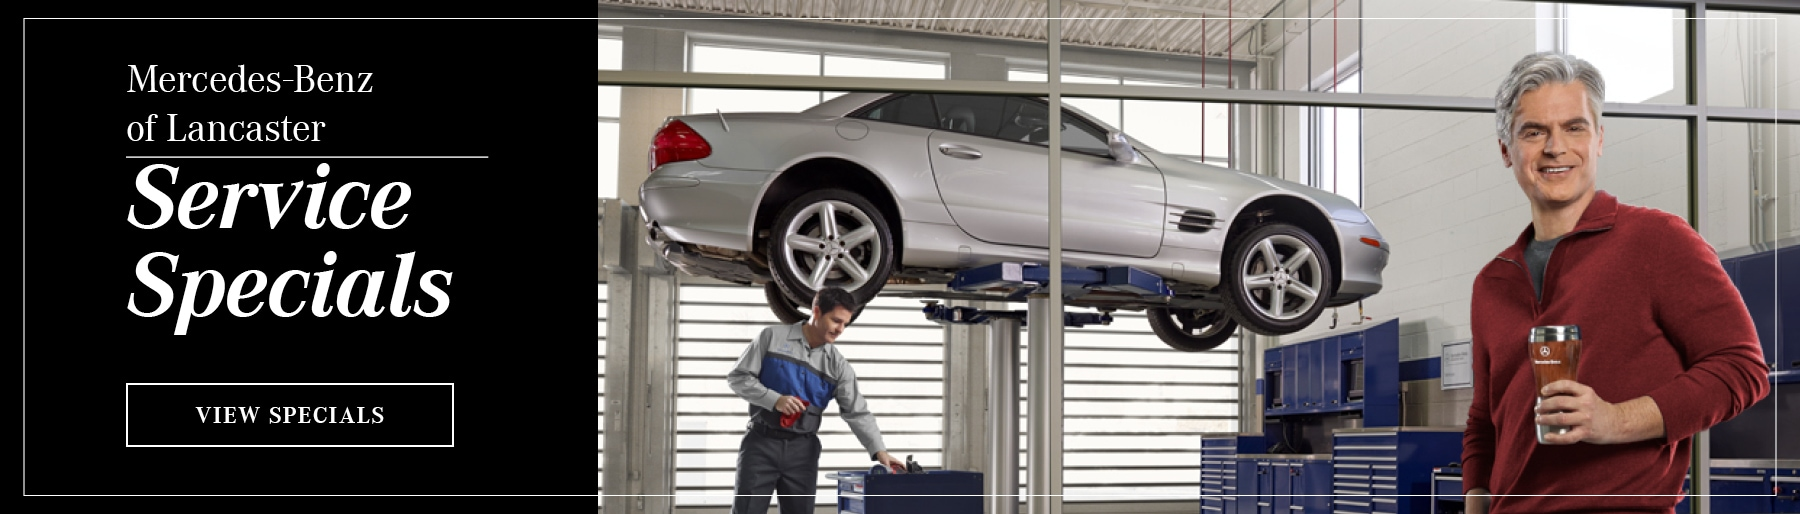 Mercedes benz of lancaster new mercedes benz dealership for Mercedes benz rockville centre service